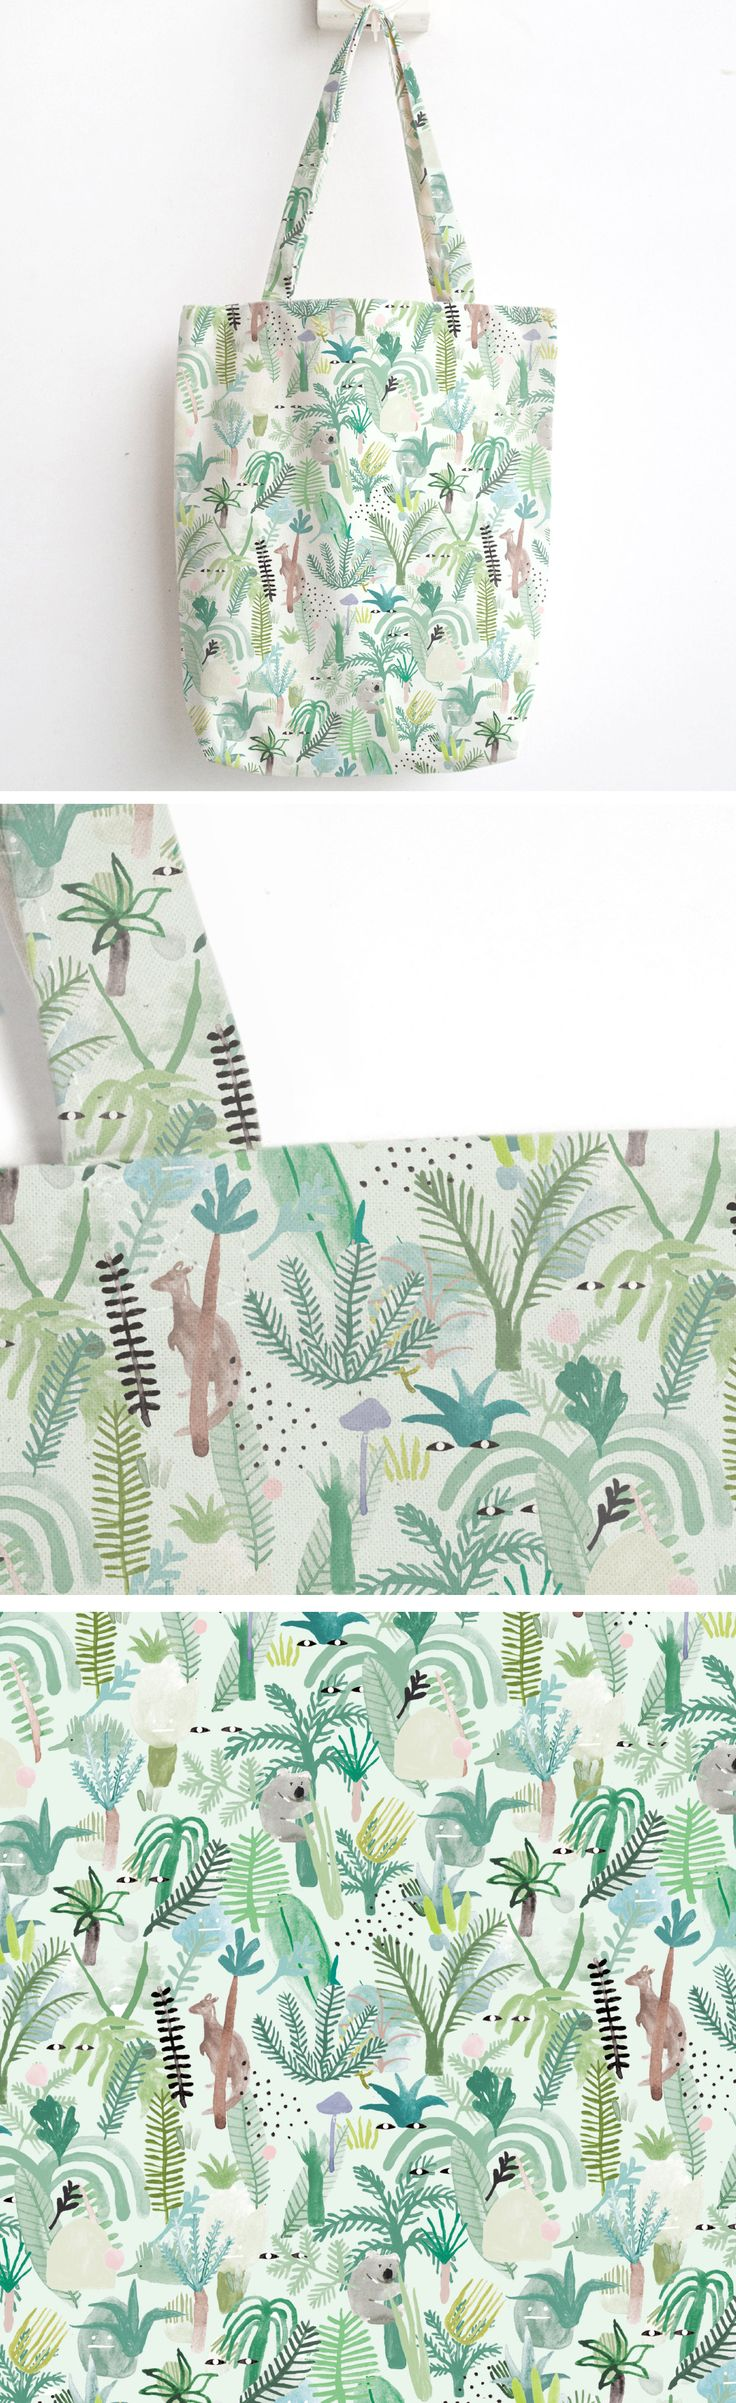 Fern gully tote - plants - watercolour - Australian design - Etsy - handmade Christmas - holiday gifts - nature lover - accessories design - stocking stuffer